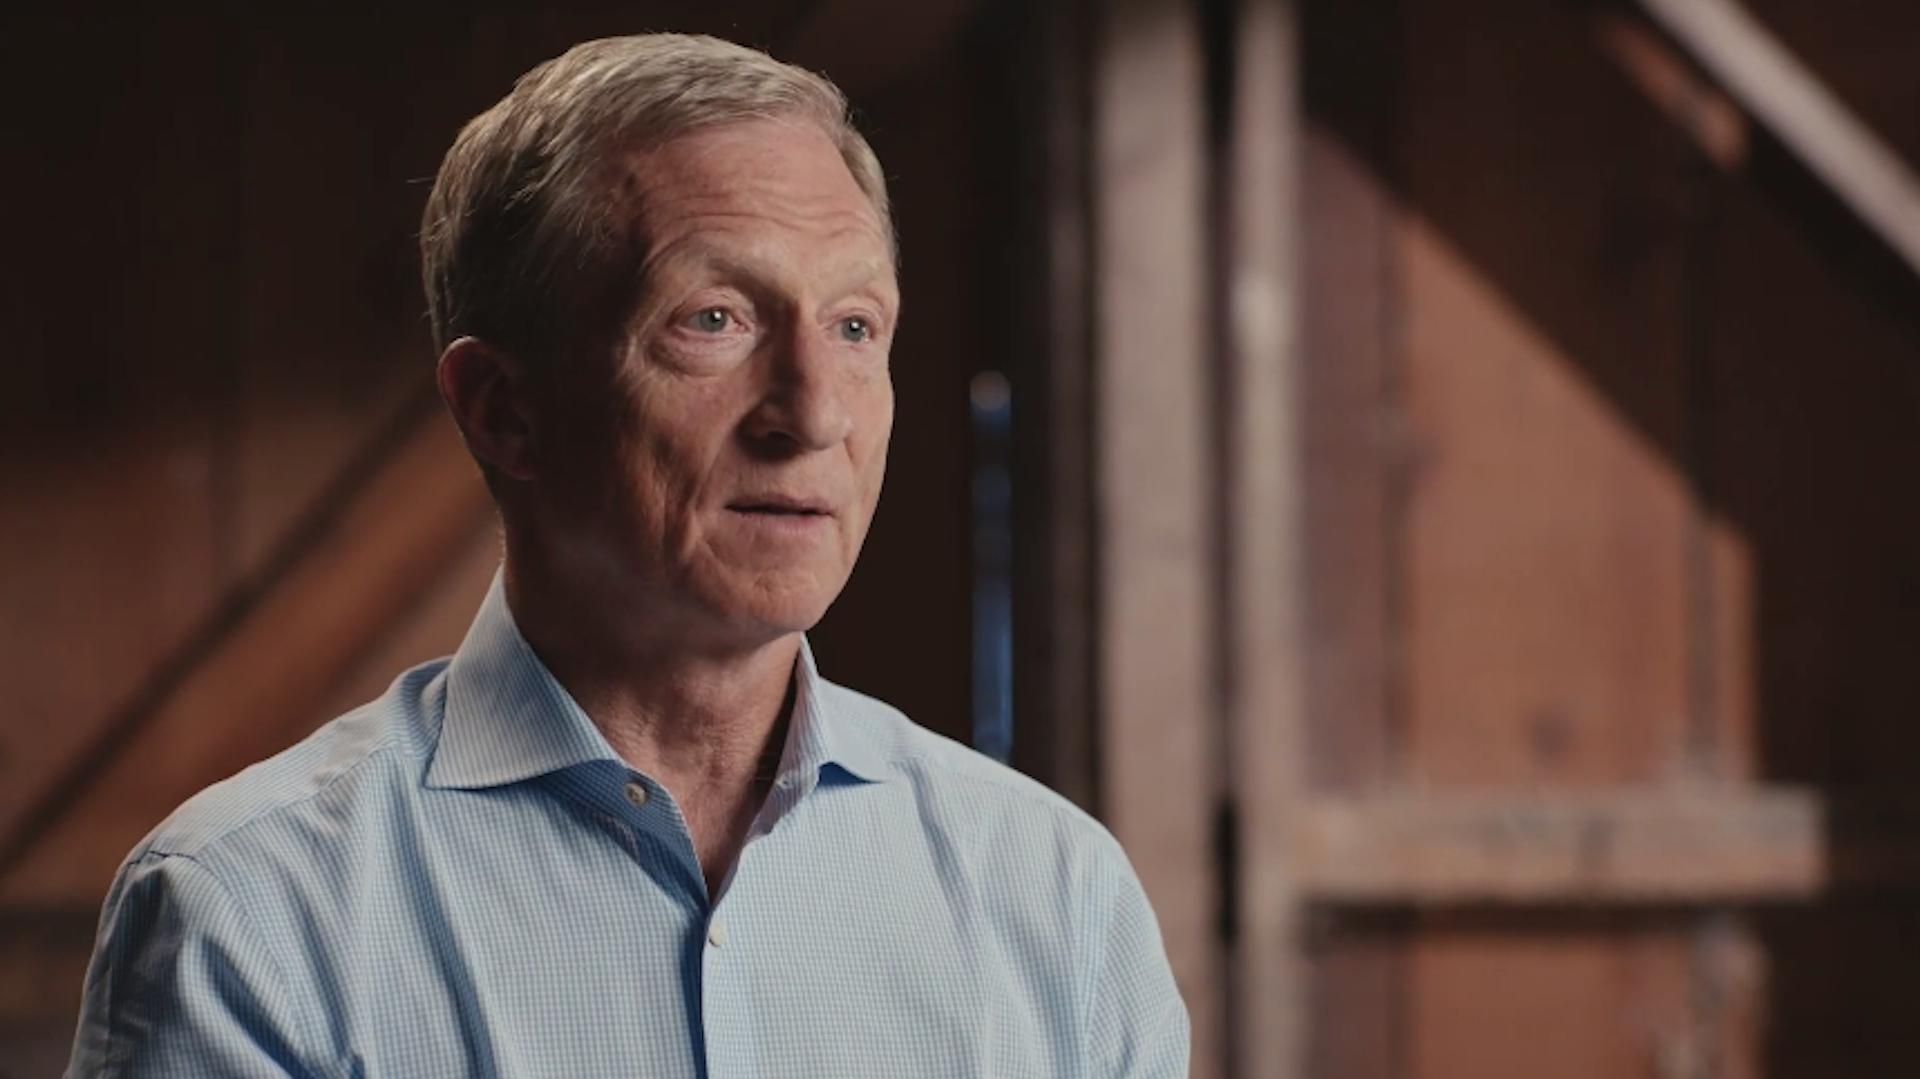 Tom Steyer: 'Fundamental Change' | Campaign 2020